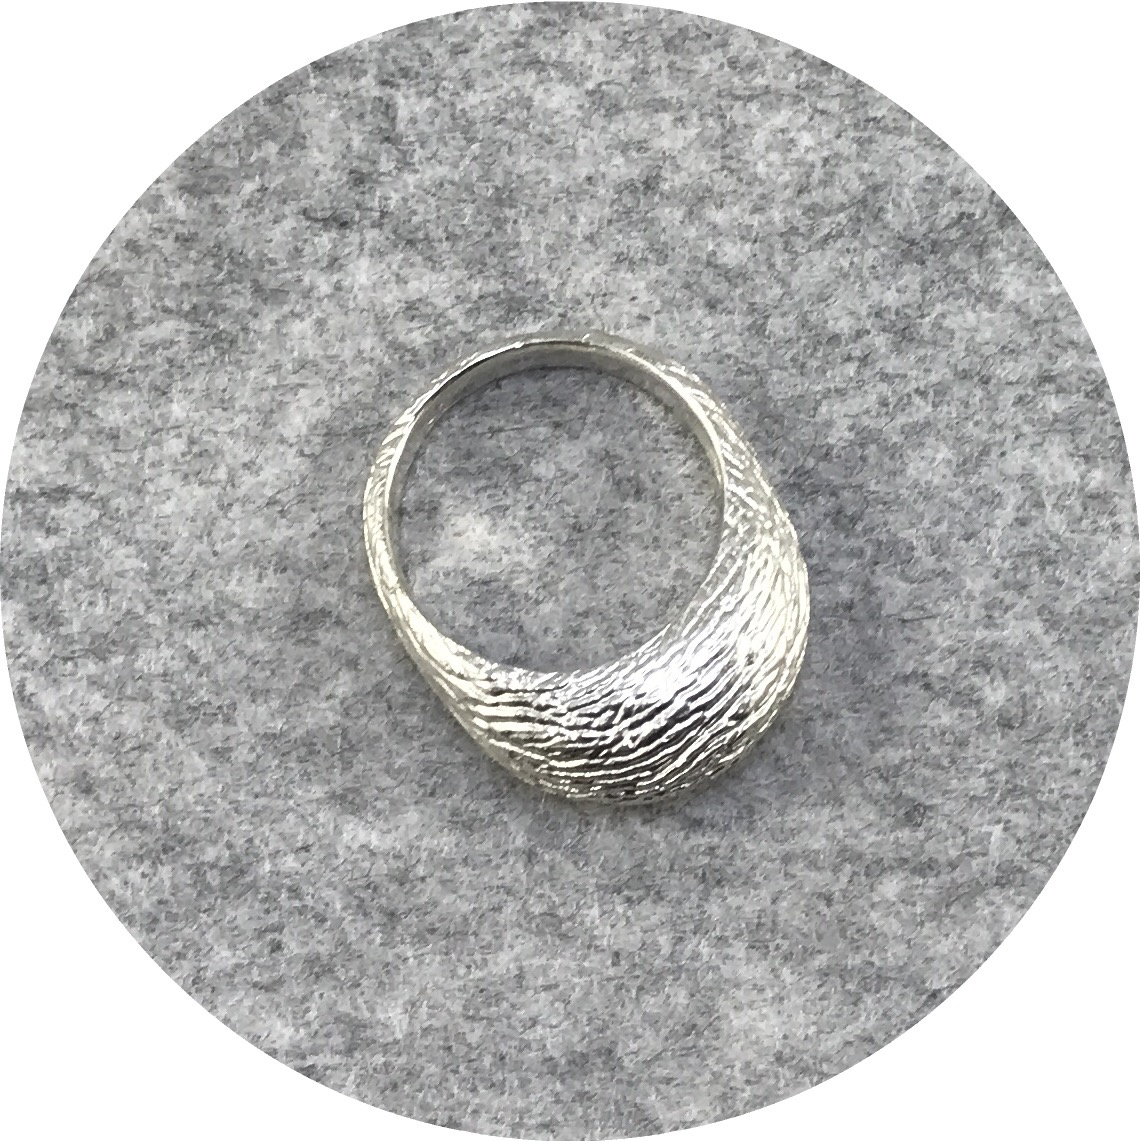 Abby Seymour- Bark Ring. Sterling silver. Size R.